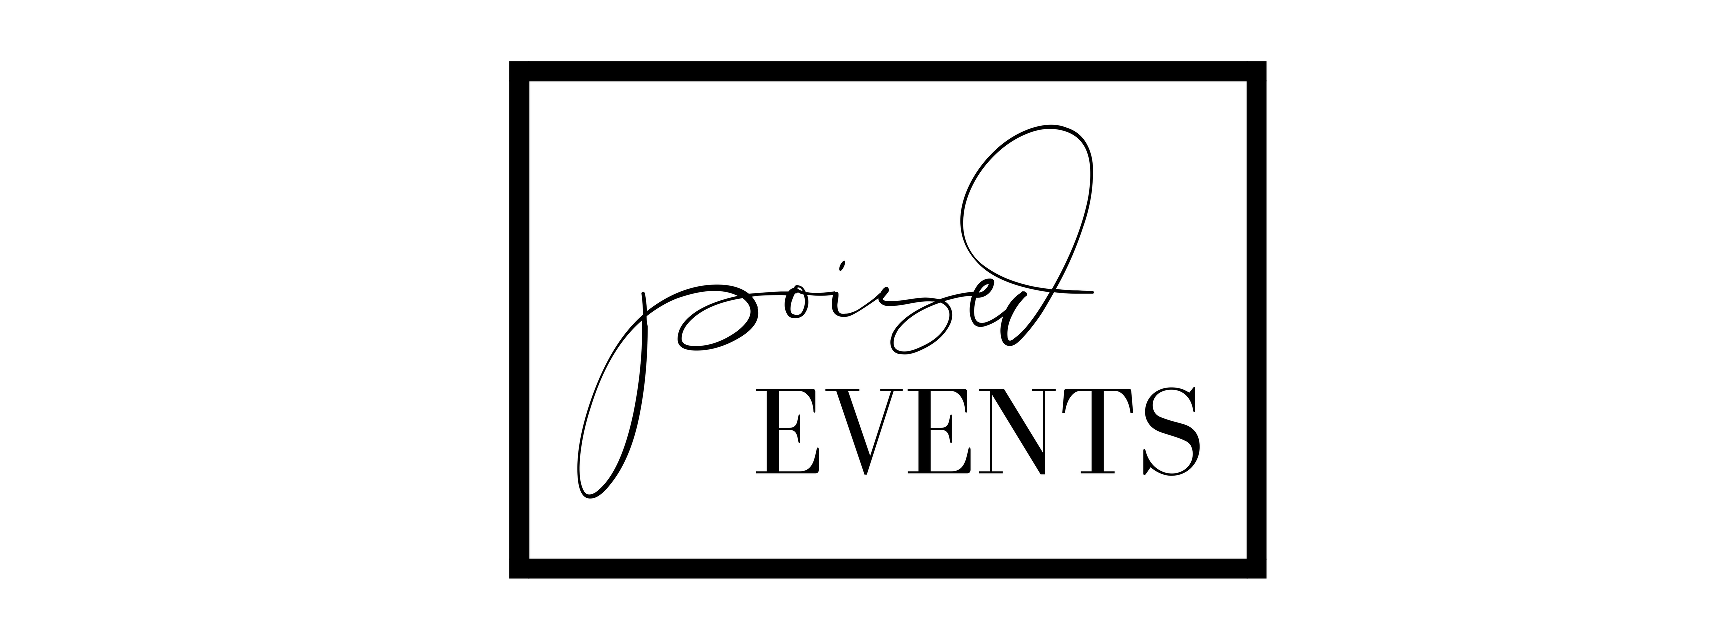 Poised Events | Denver Colorado Wedding Planner